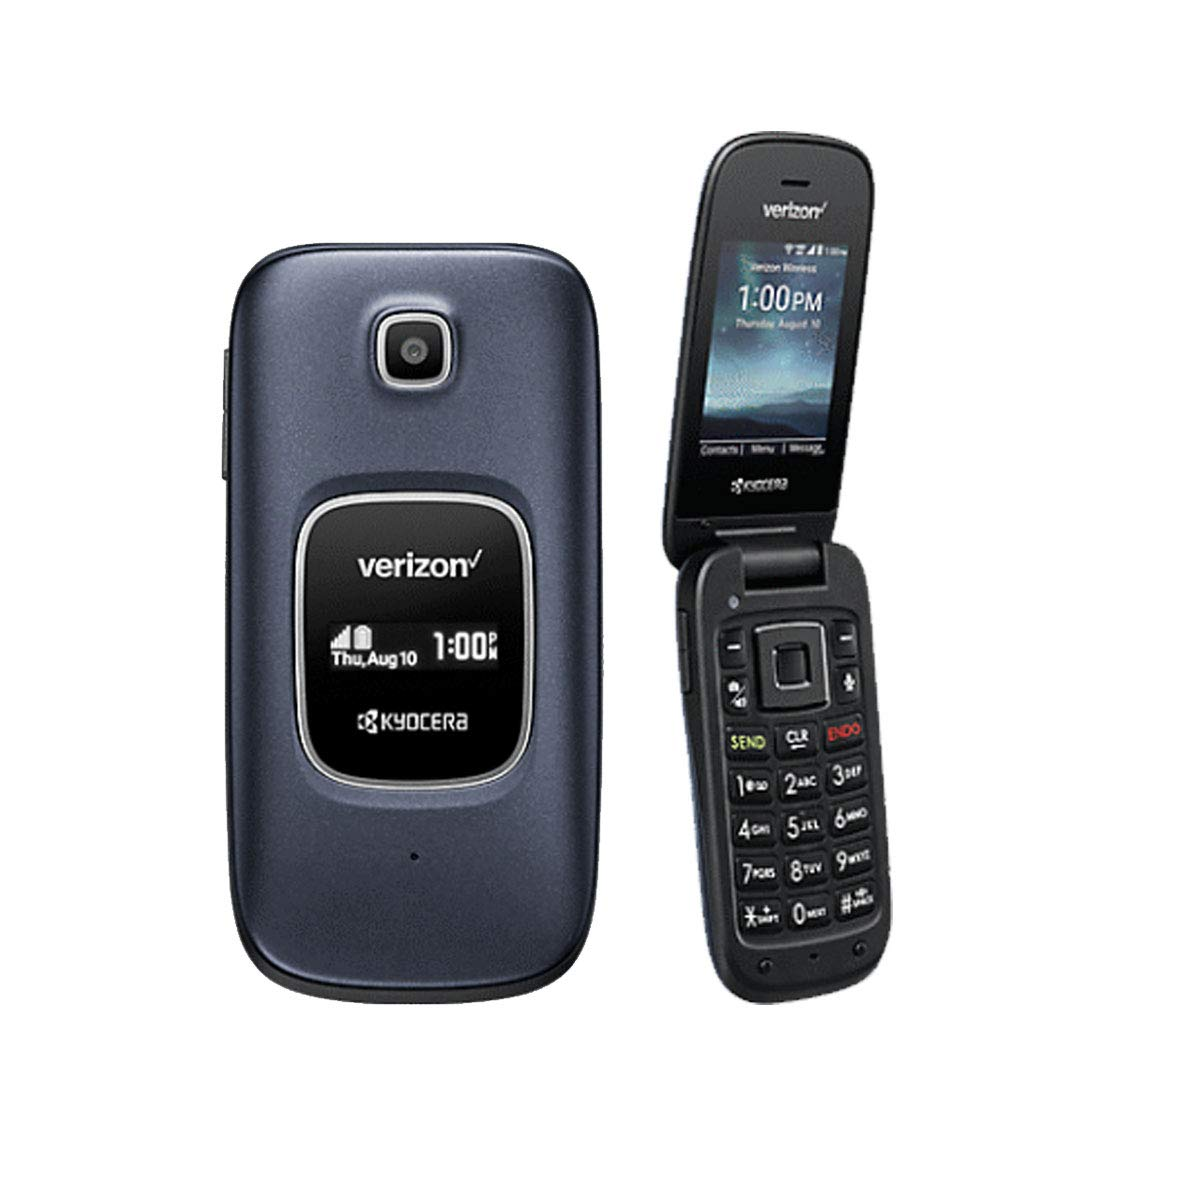 Top 5 Kyocera Flip Phone Unlocked 2019 – Today Smartphone Deals